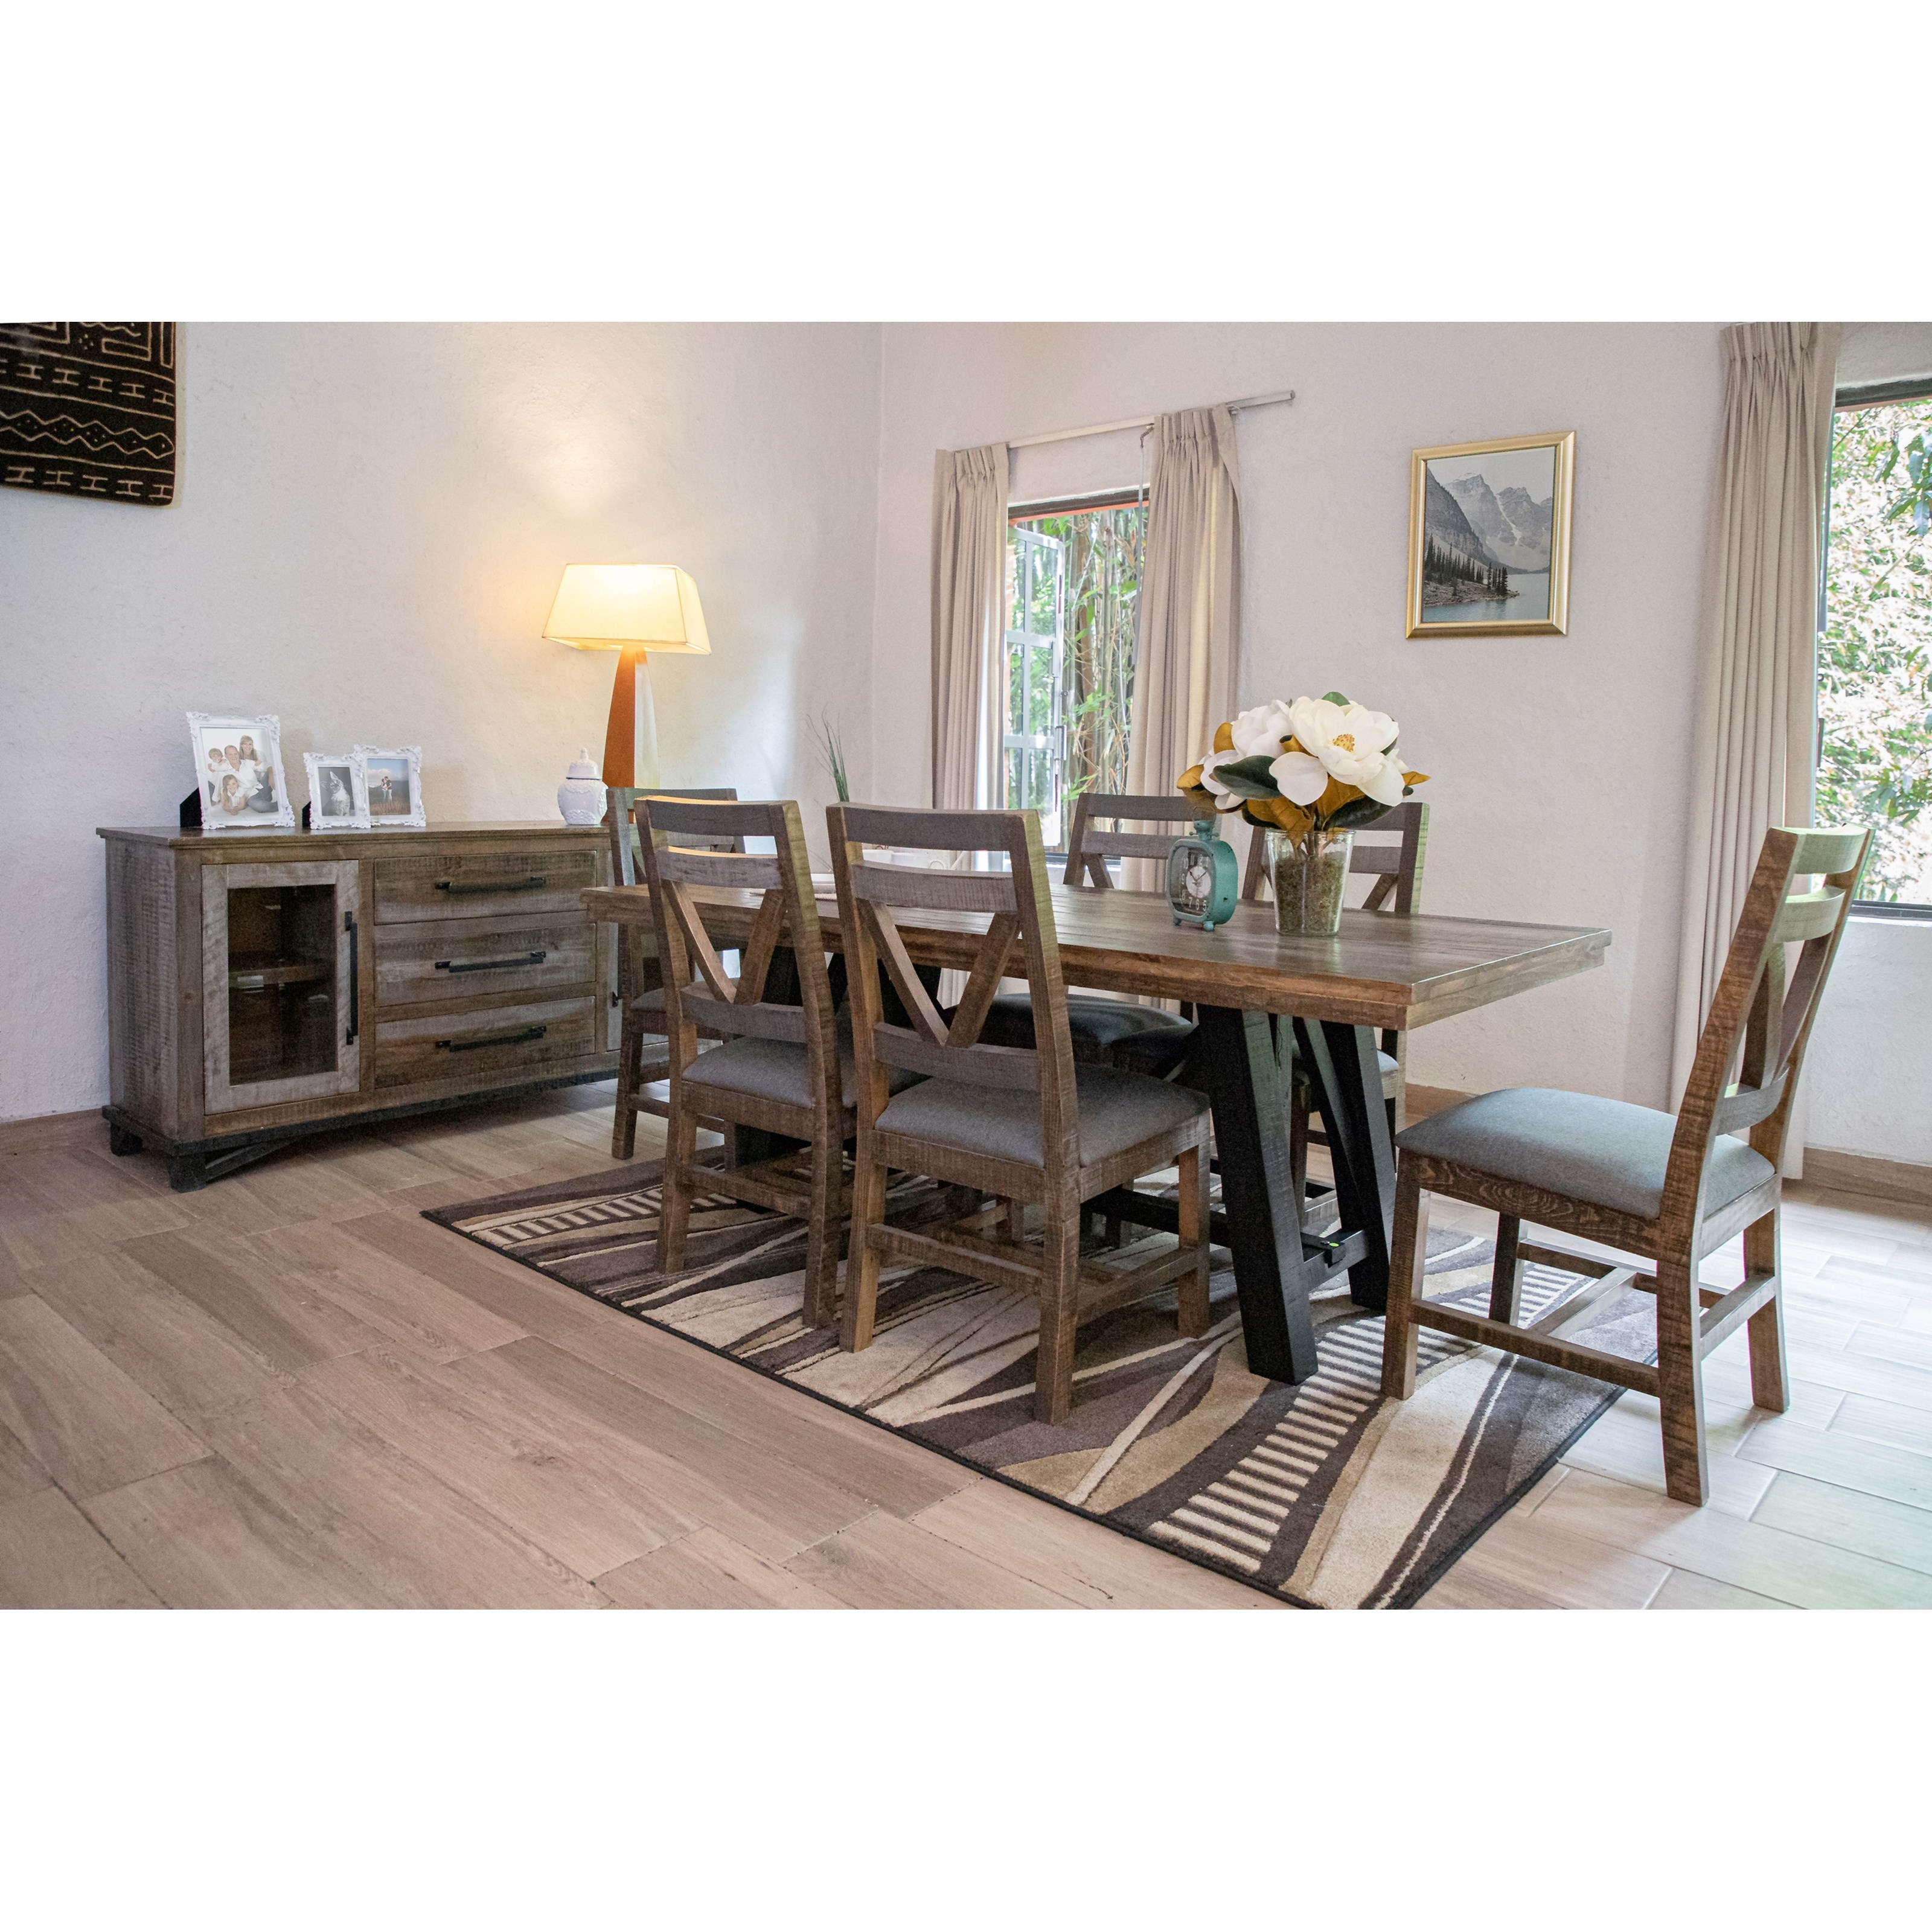 Loft Table and Chair Set by International Furniture Direct at Zak's Home